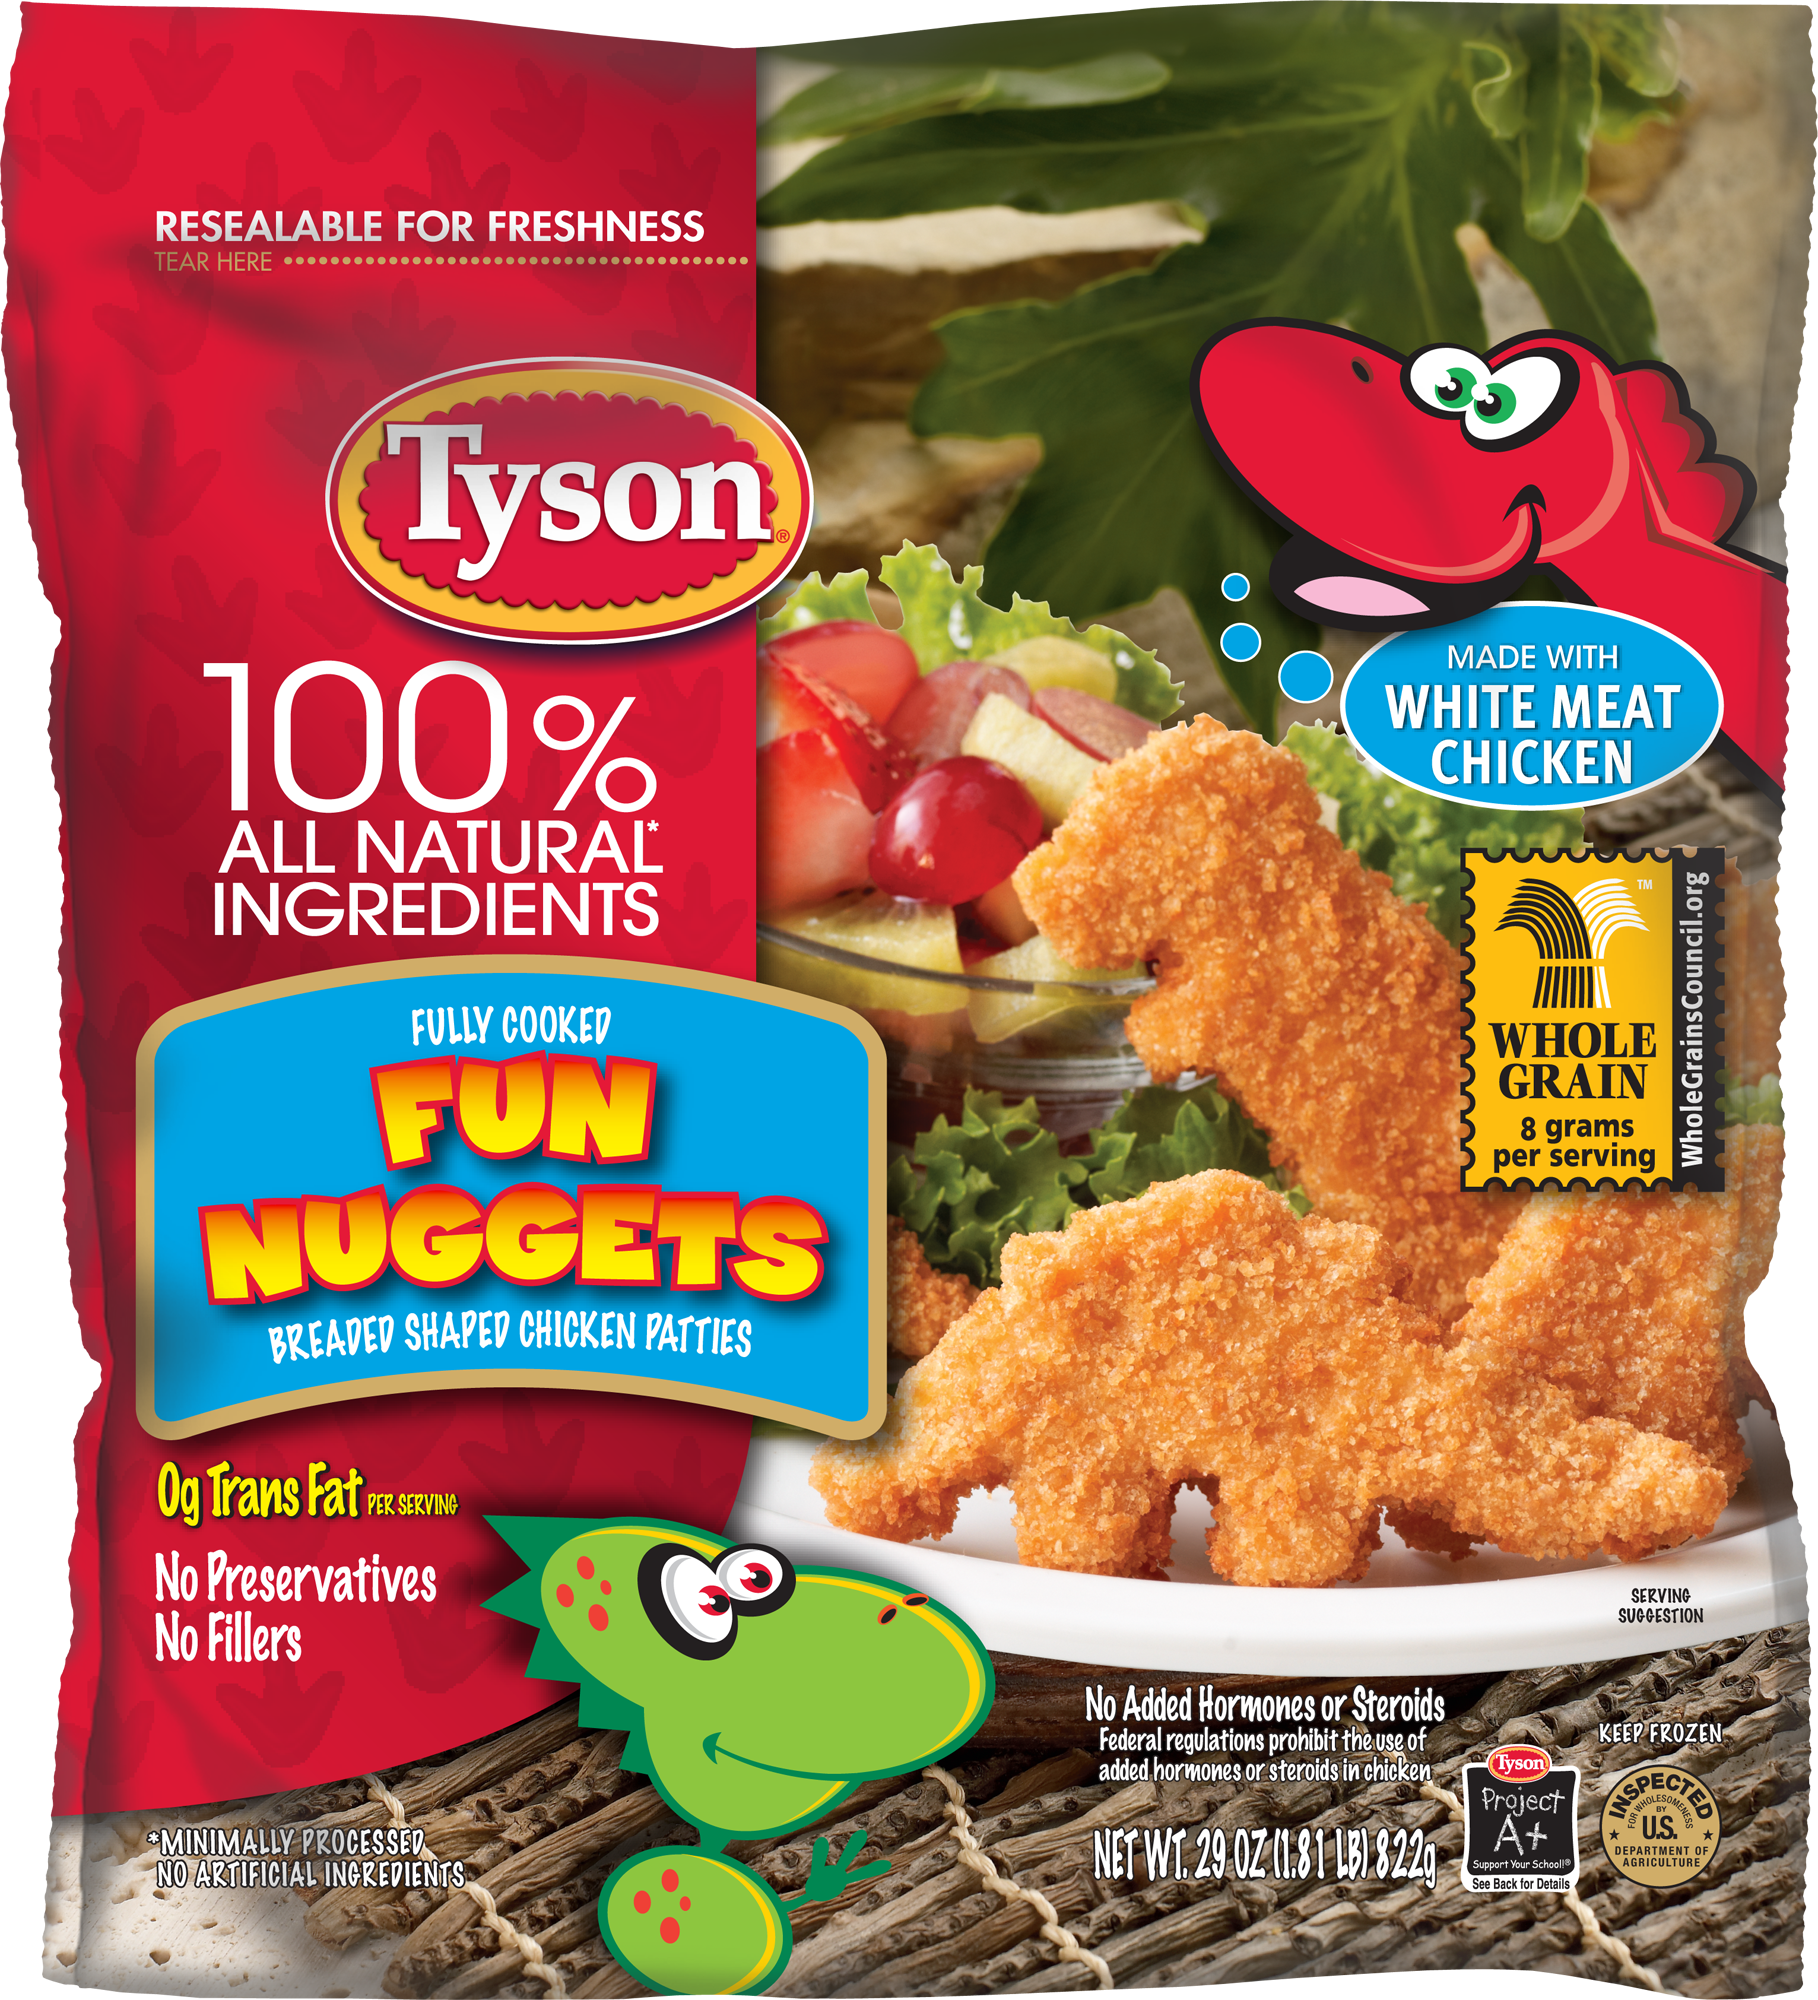 Fully Cooked Nuggets Tyson Chicken Chicken Nuggets Dinosaur Chicken Nuggets